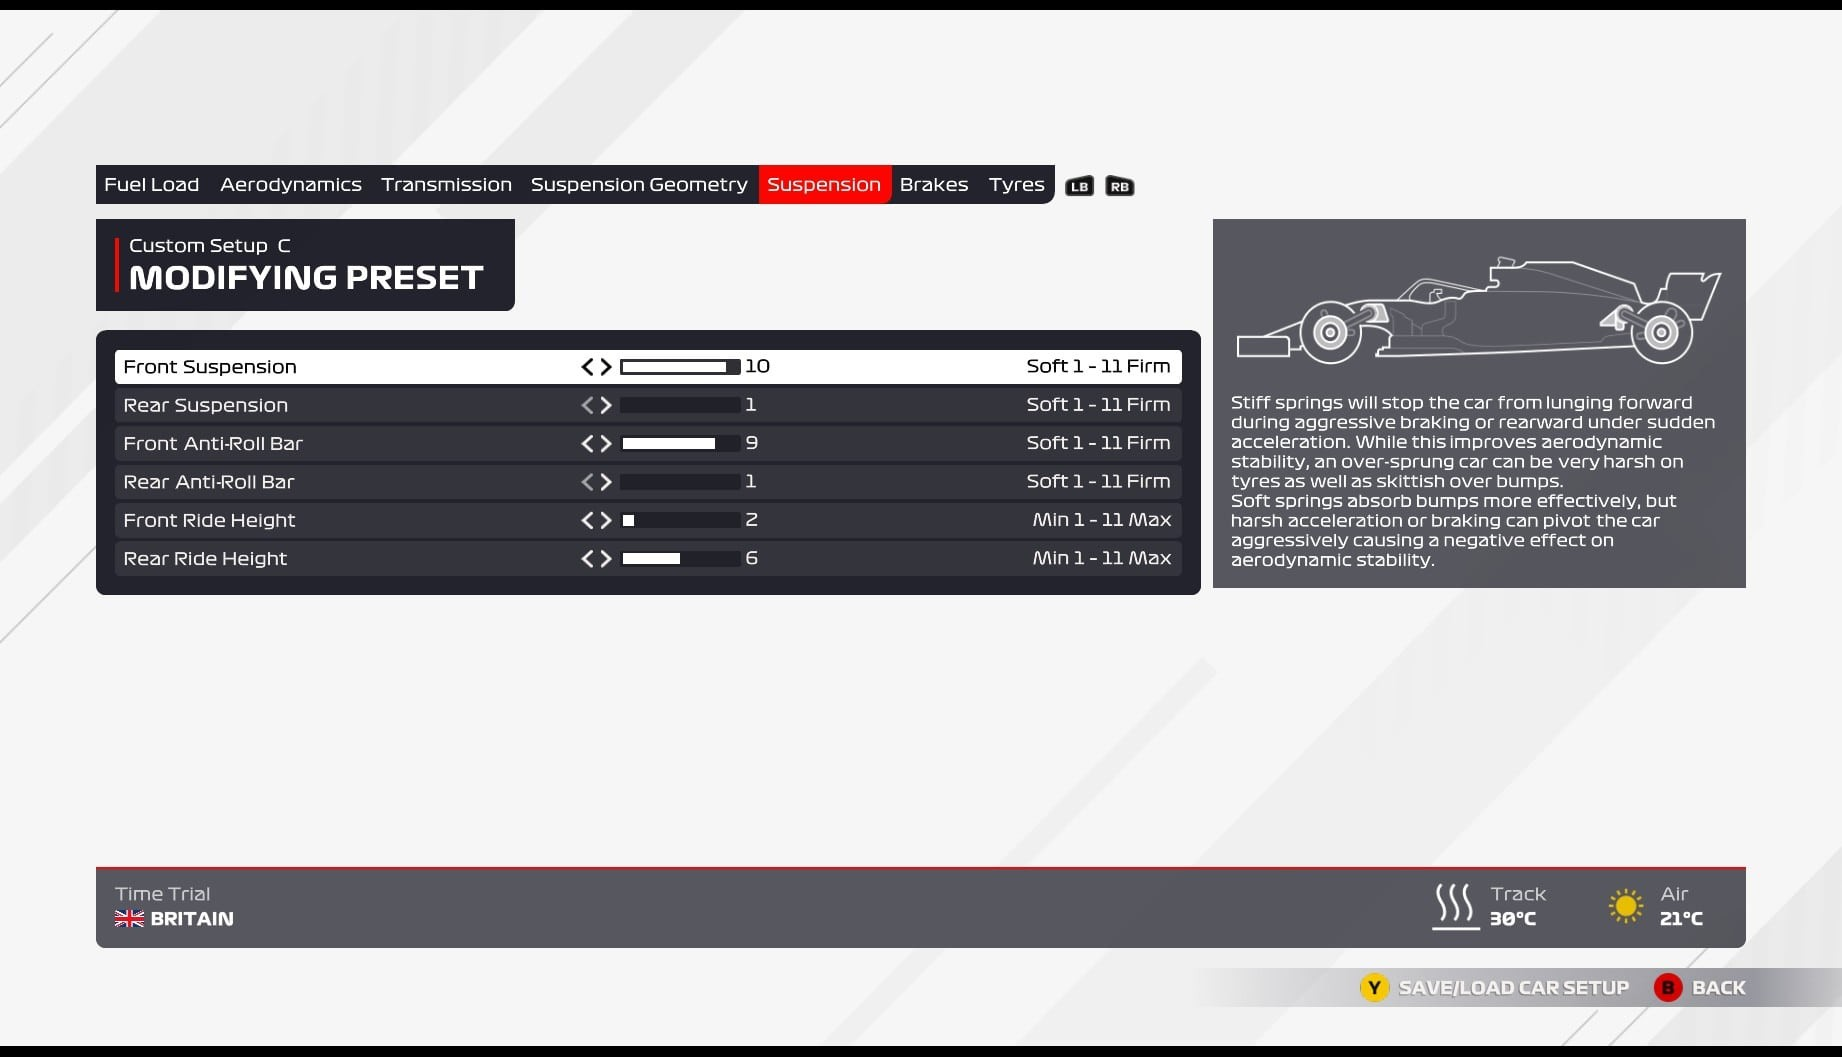 An image of the suspension page in the F1 2021 car setup screen.